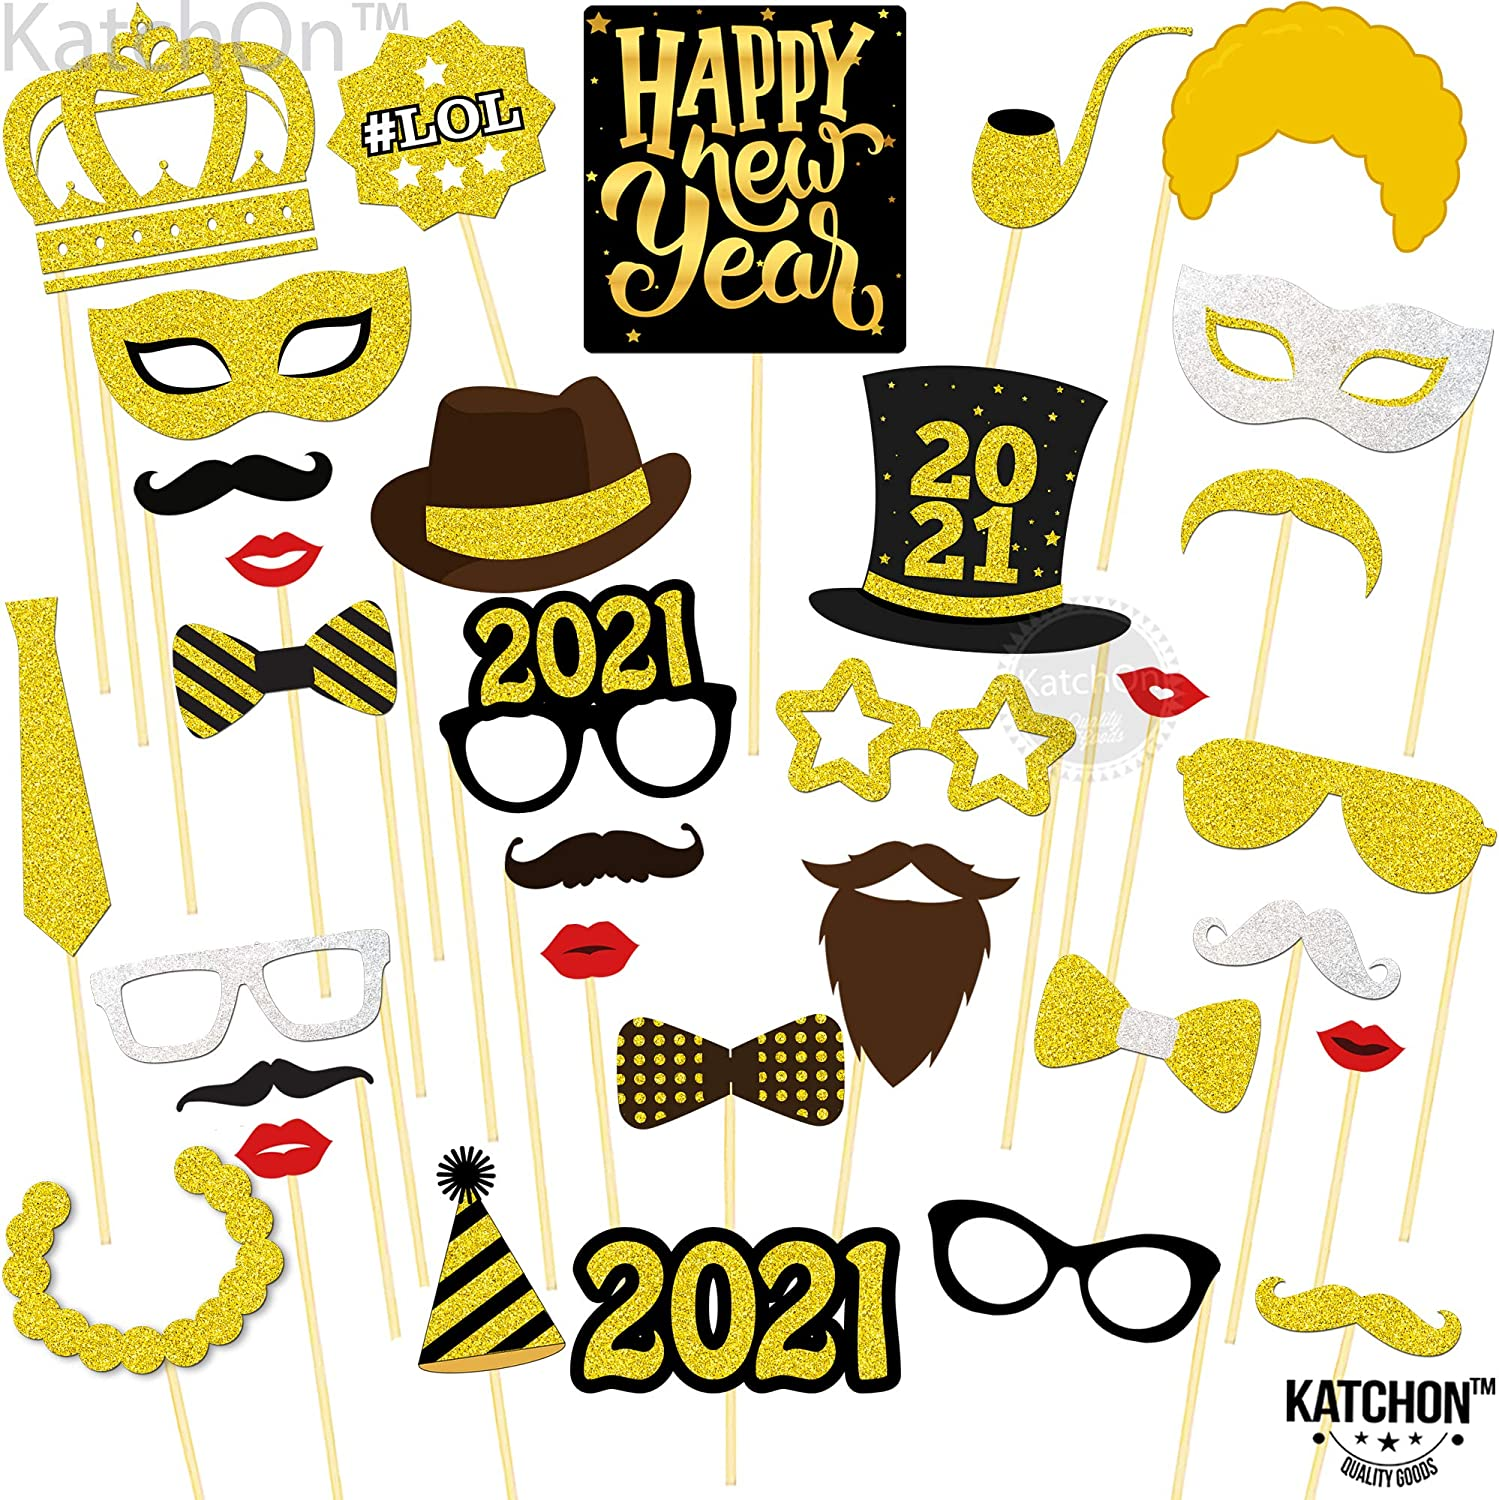 28 St/ück Abschluss Requisiten DIY Mustache Lippen Brille Krawatte Selfie Requisiten Dekoration 28 St/ück Dsaren 2021 Photo Booth Props